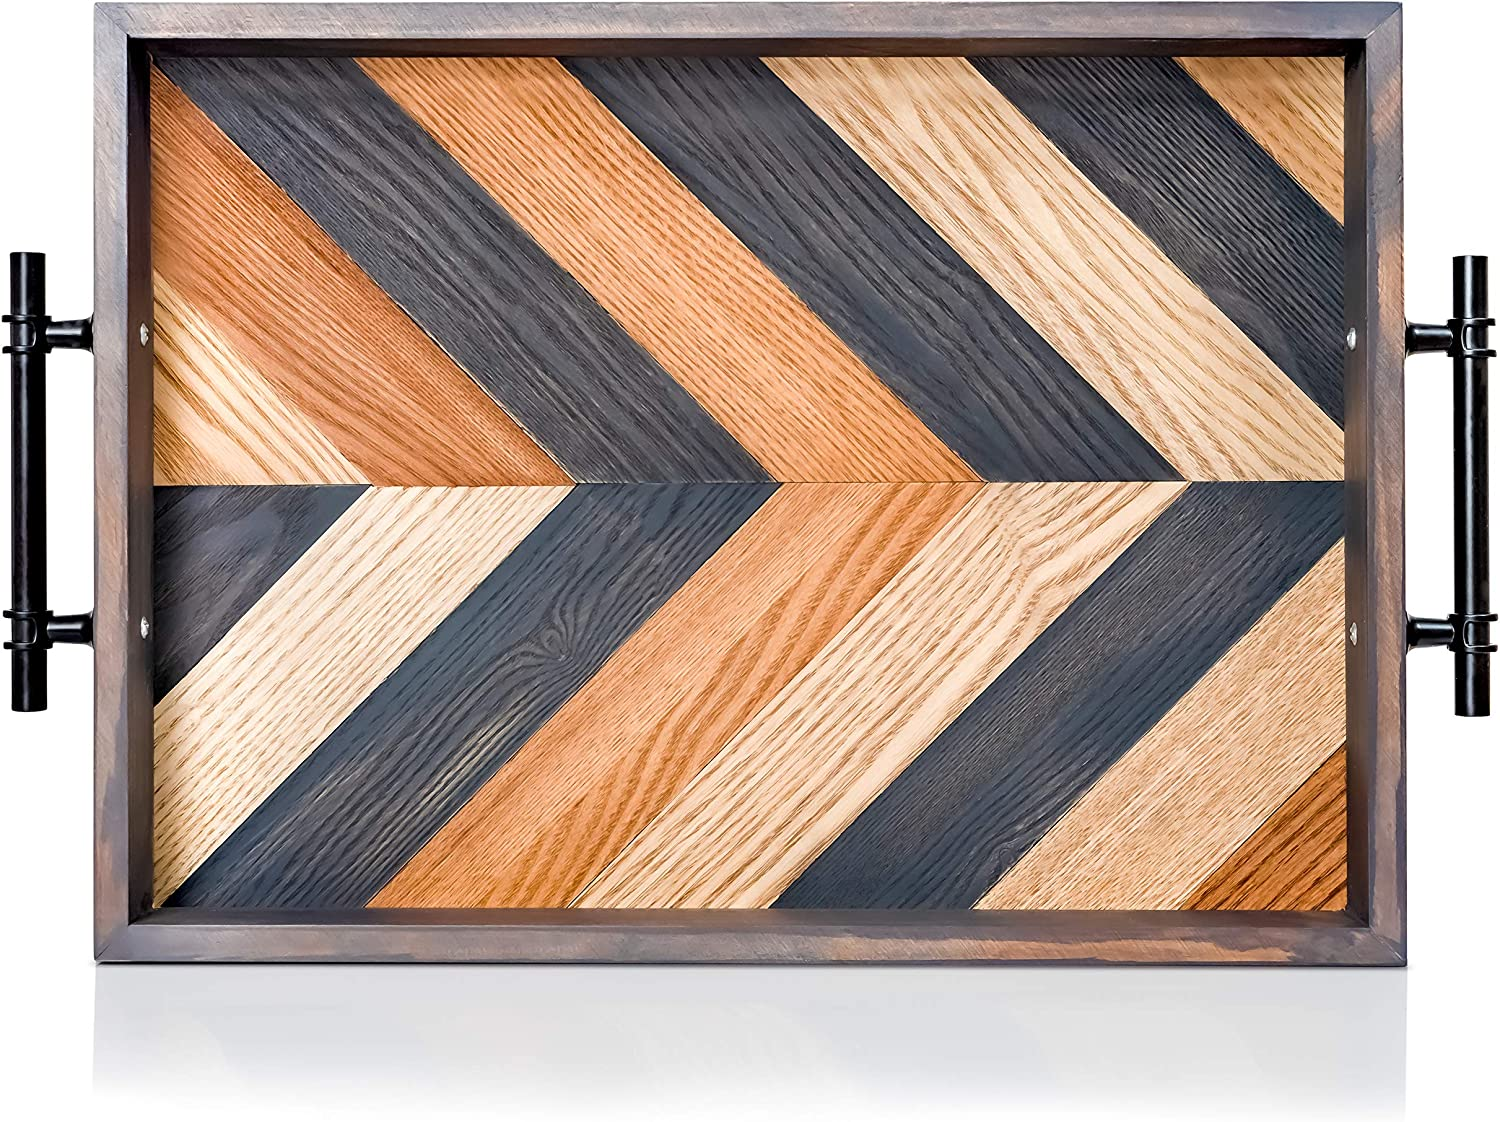 Ottoman Tray-Decorative Coffee Table Tray for Living Room-Wood Serving Trays for Rustic Farmhouse Home décor- Wooden Tray with Handles (16.5in X 12 in X 2 in)